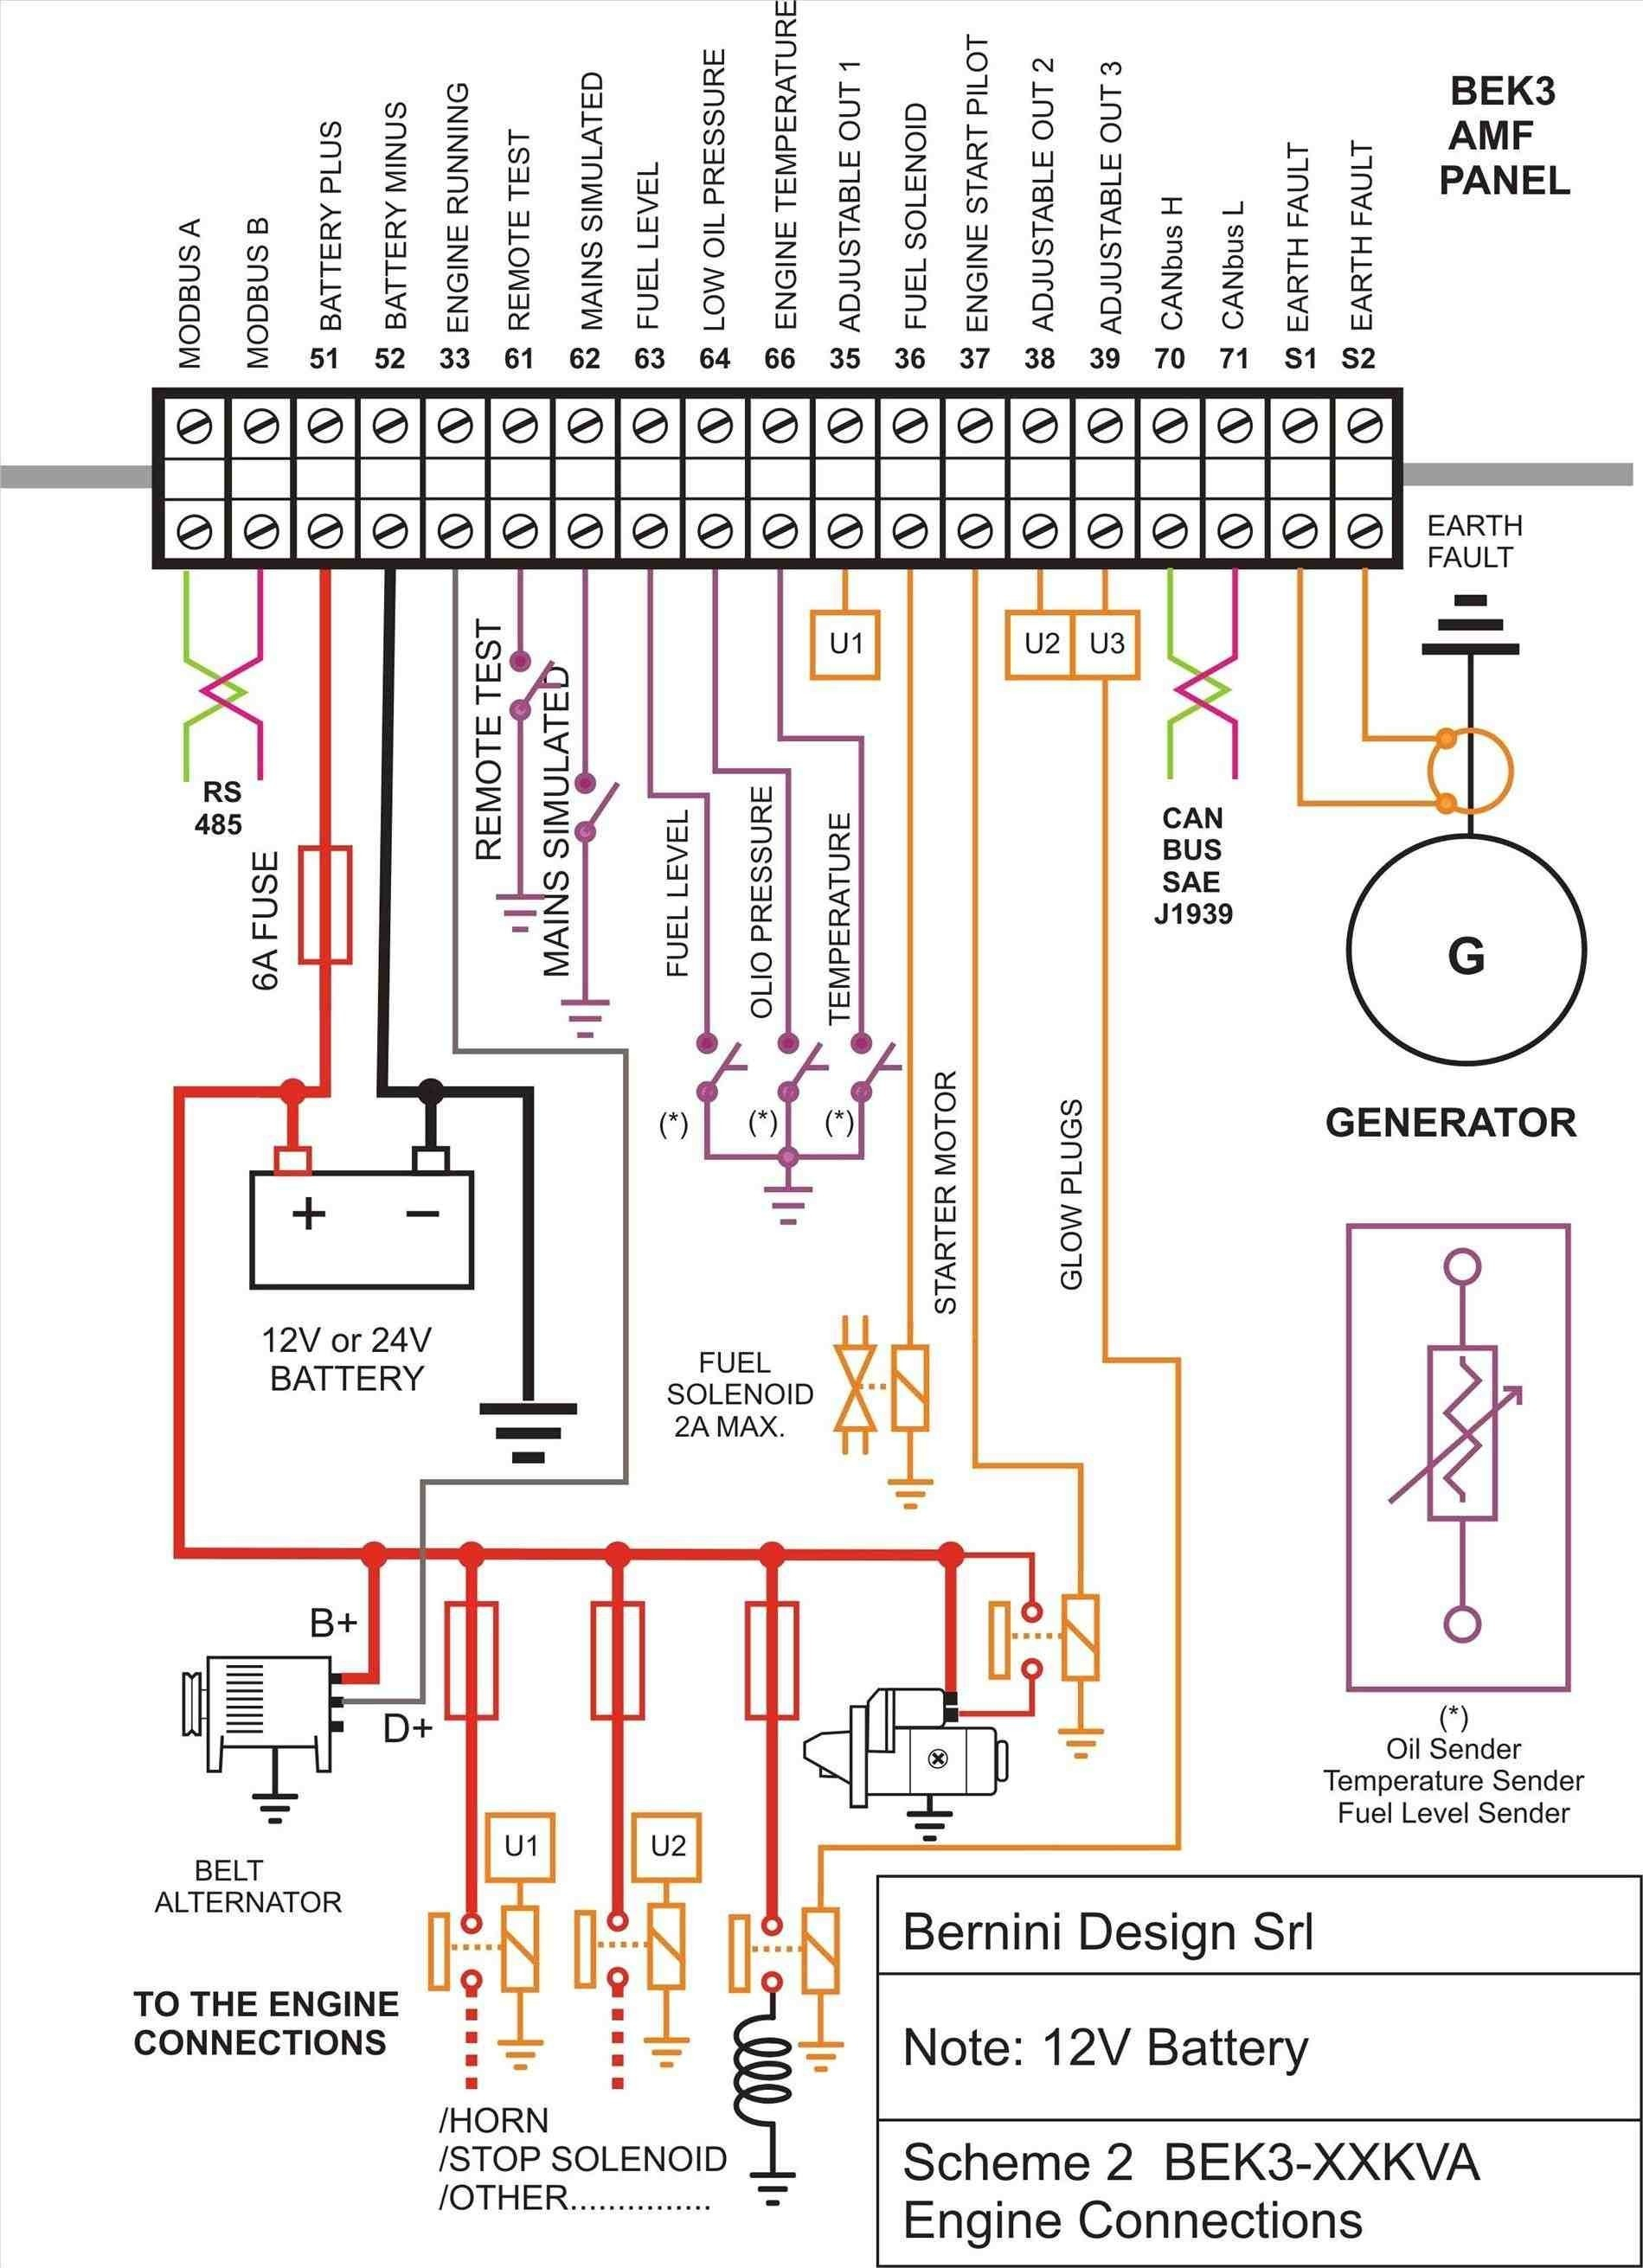 house wiring diagram pdf Collection-House Wiring Circuit Diagram Pdf Fresh Typical Wiring Diagram for House Valid Nice New Circuit Diagram 17-l